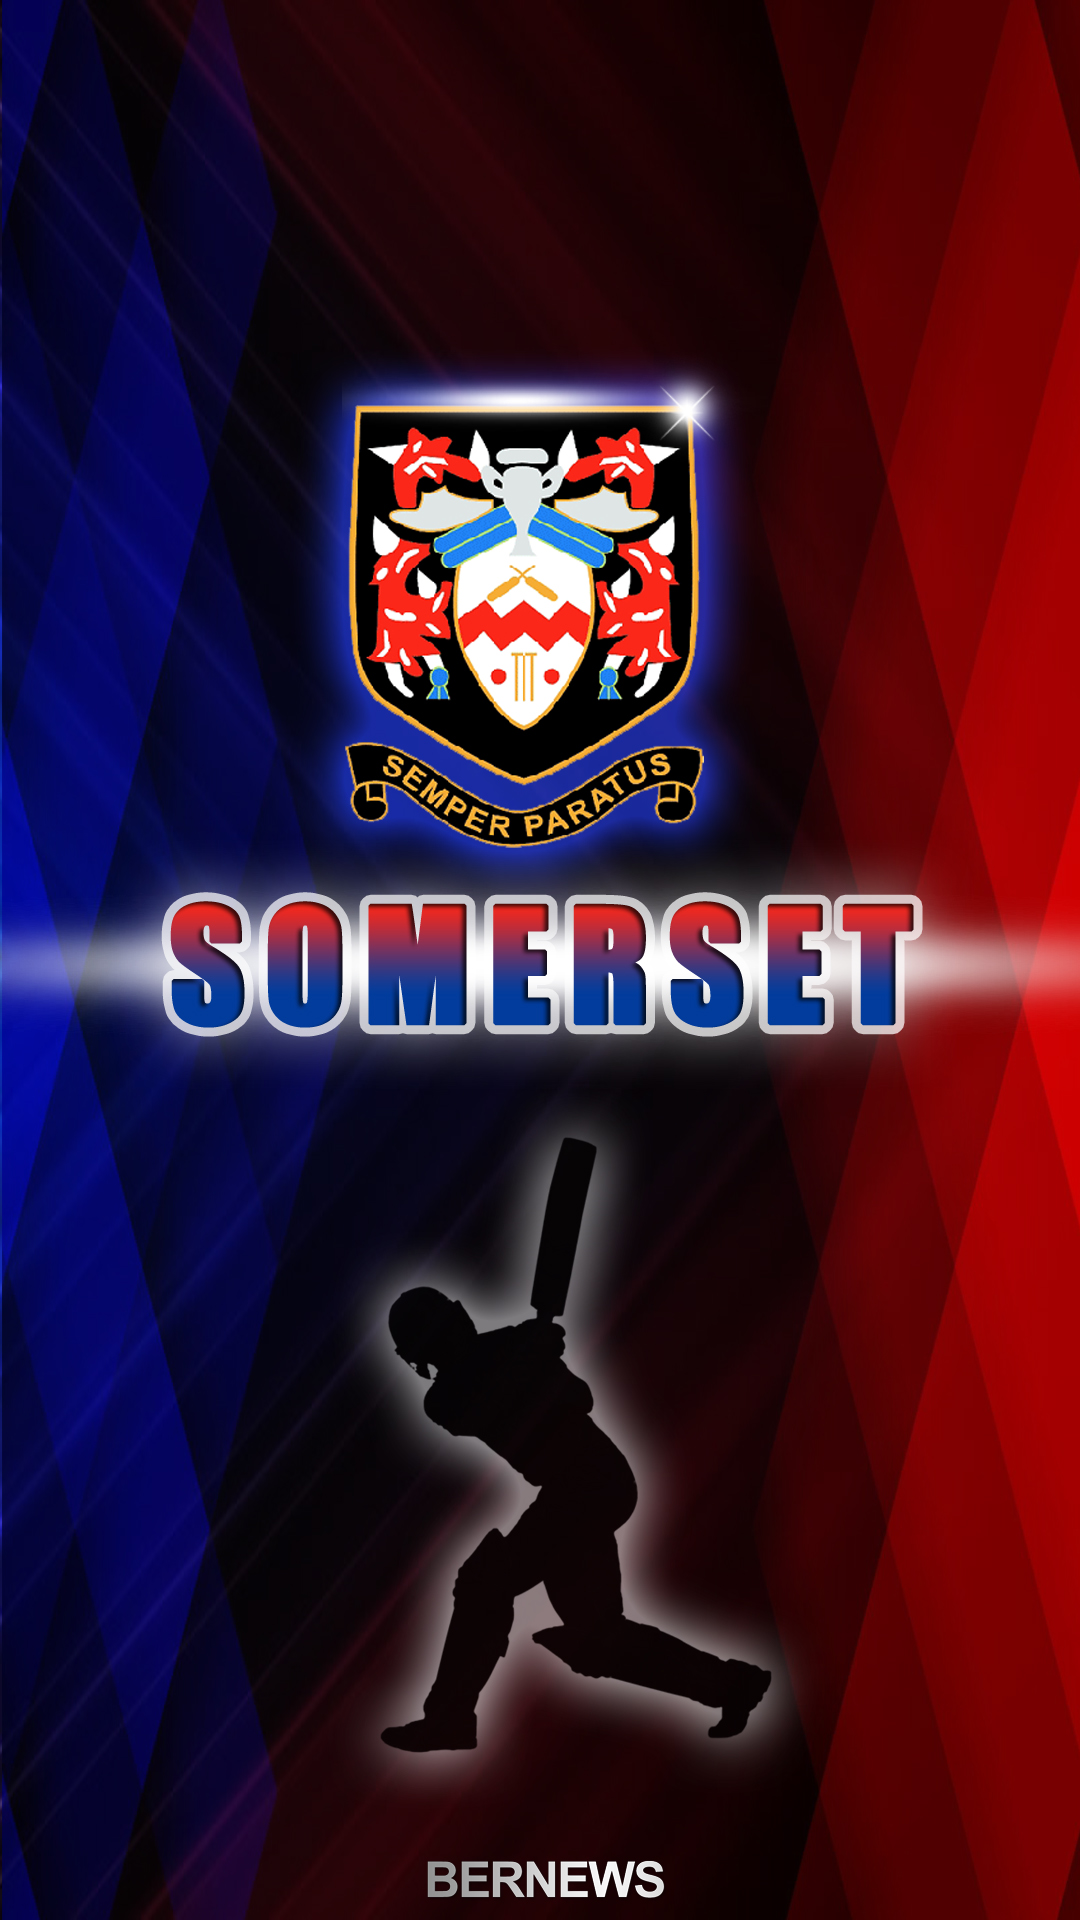 Somerset Cup Match Bermuda Phone Wallpaper by Bernews 2018 (5)